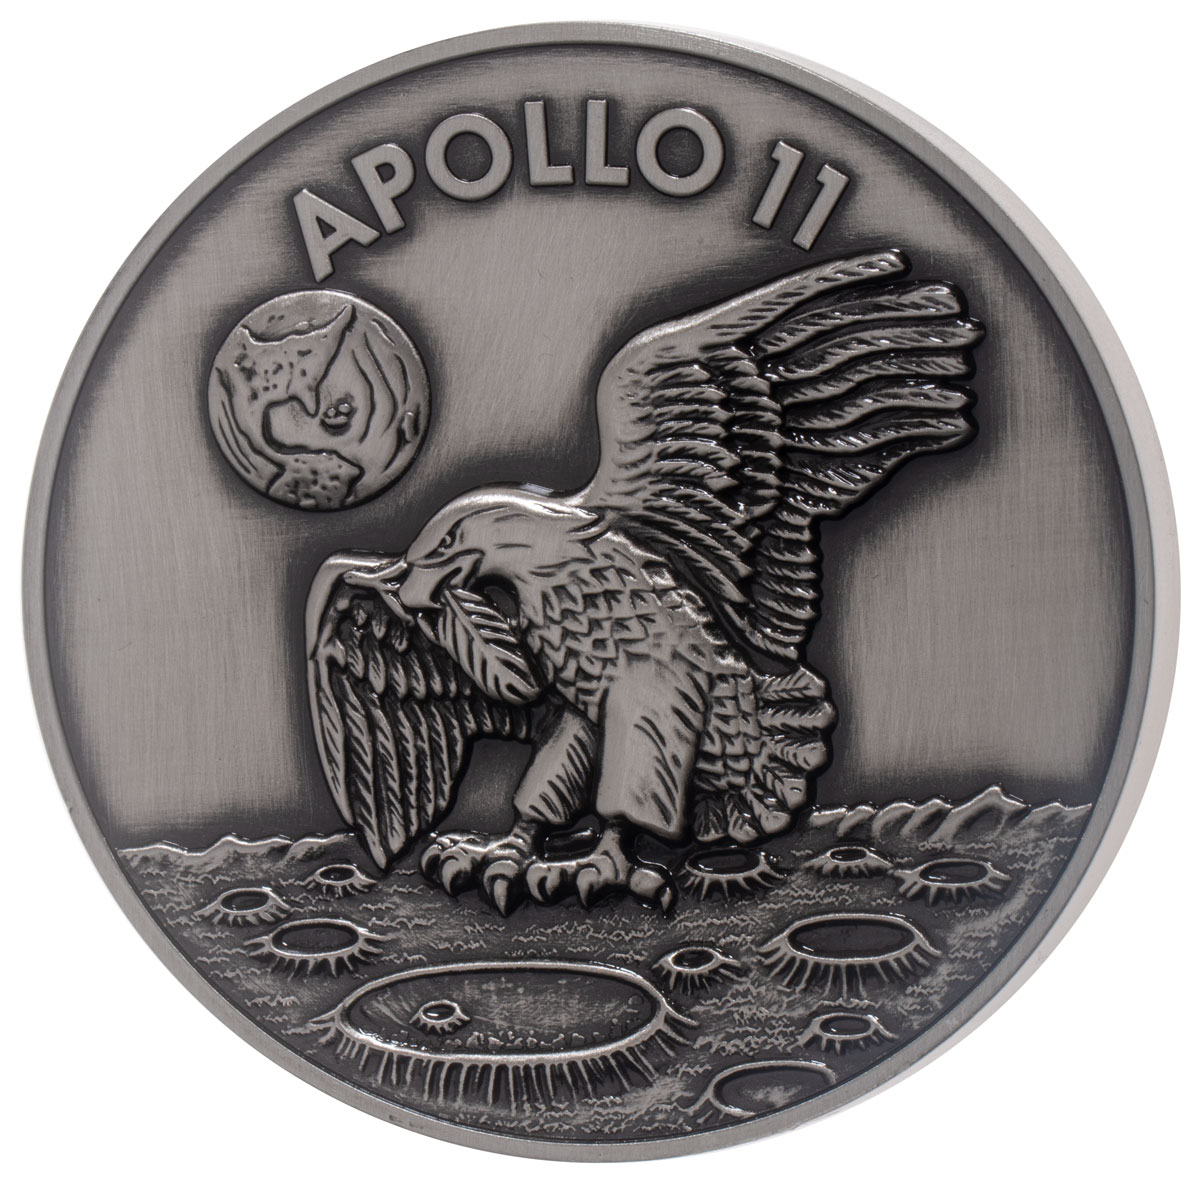 1969-2019 Apollo 11 50th Anniversary Robbins Medals 5 oz Silver with Space Flown Alloy Antiqued Medal